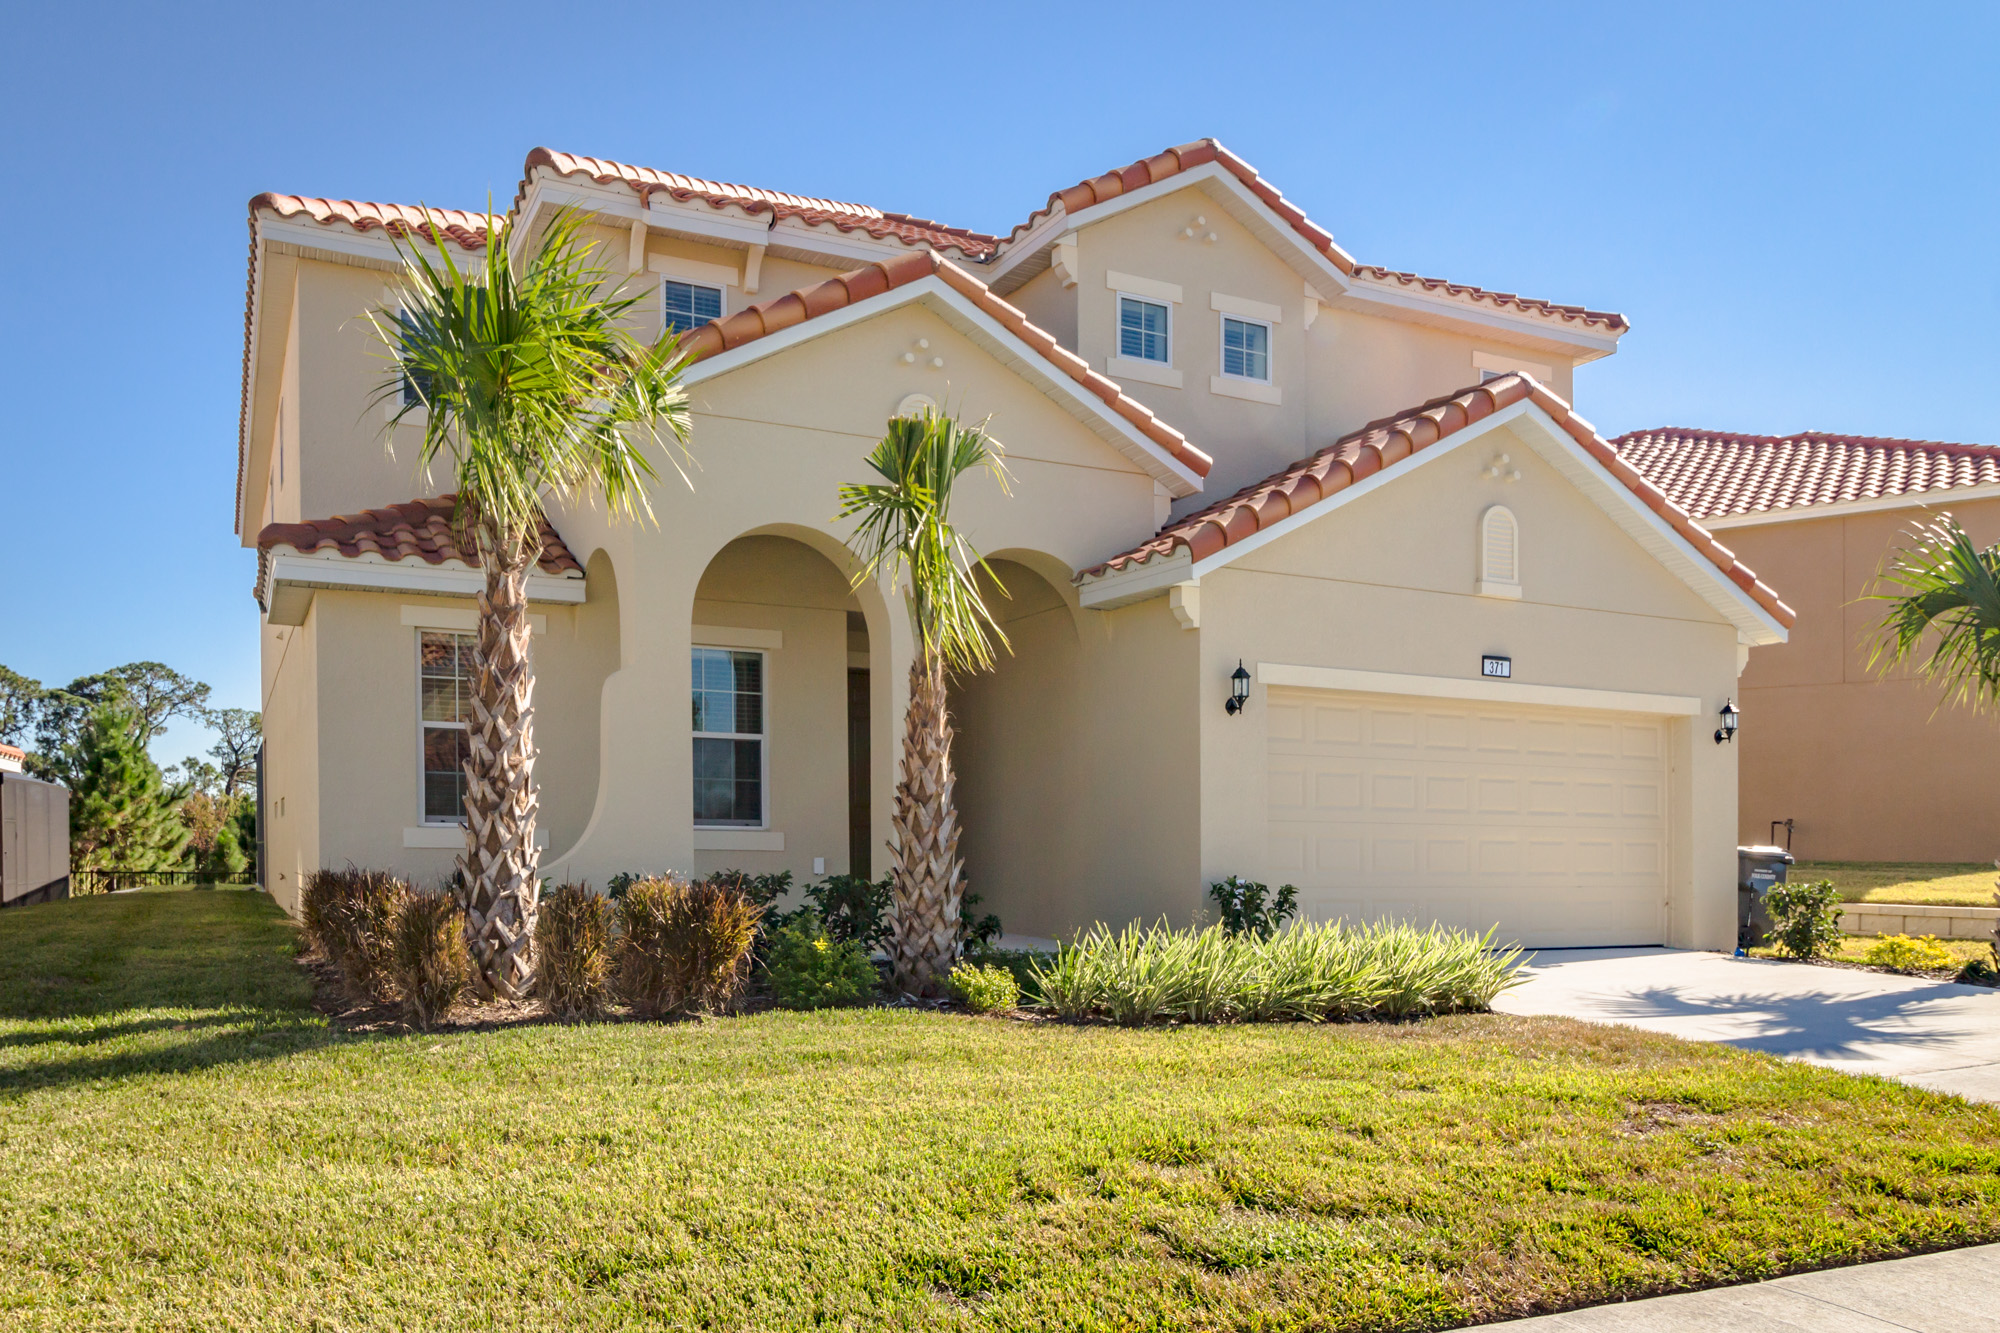 8 bedroom vacation homes in kissimmee florida 28 images stunning 8 bedroom vacation homes in 4 bedroom vacation rentals orlando florida